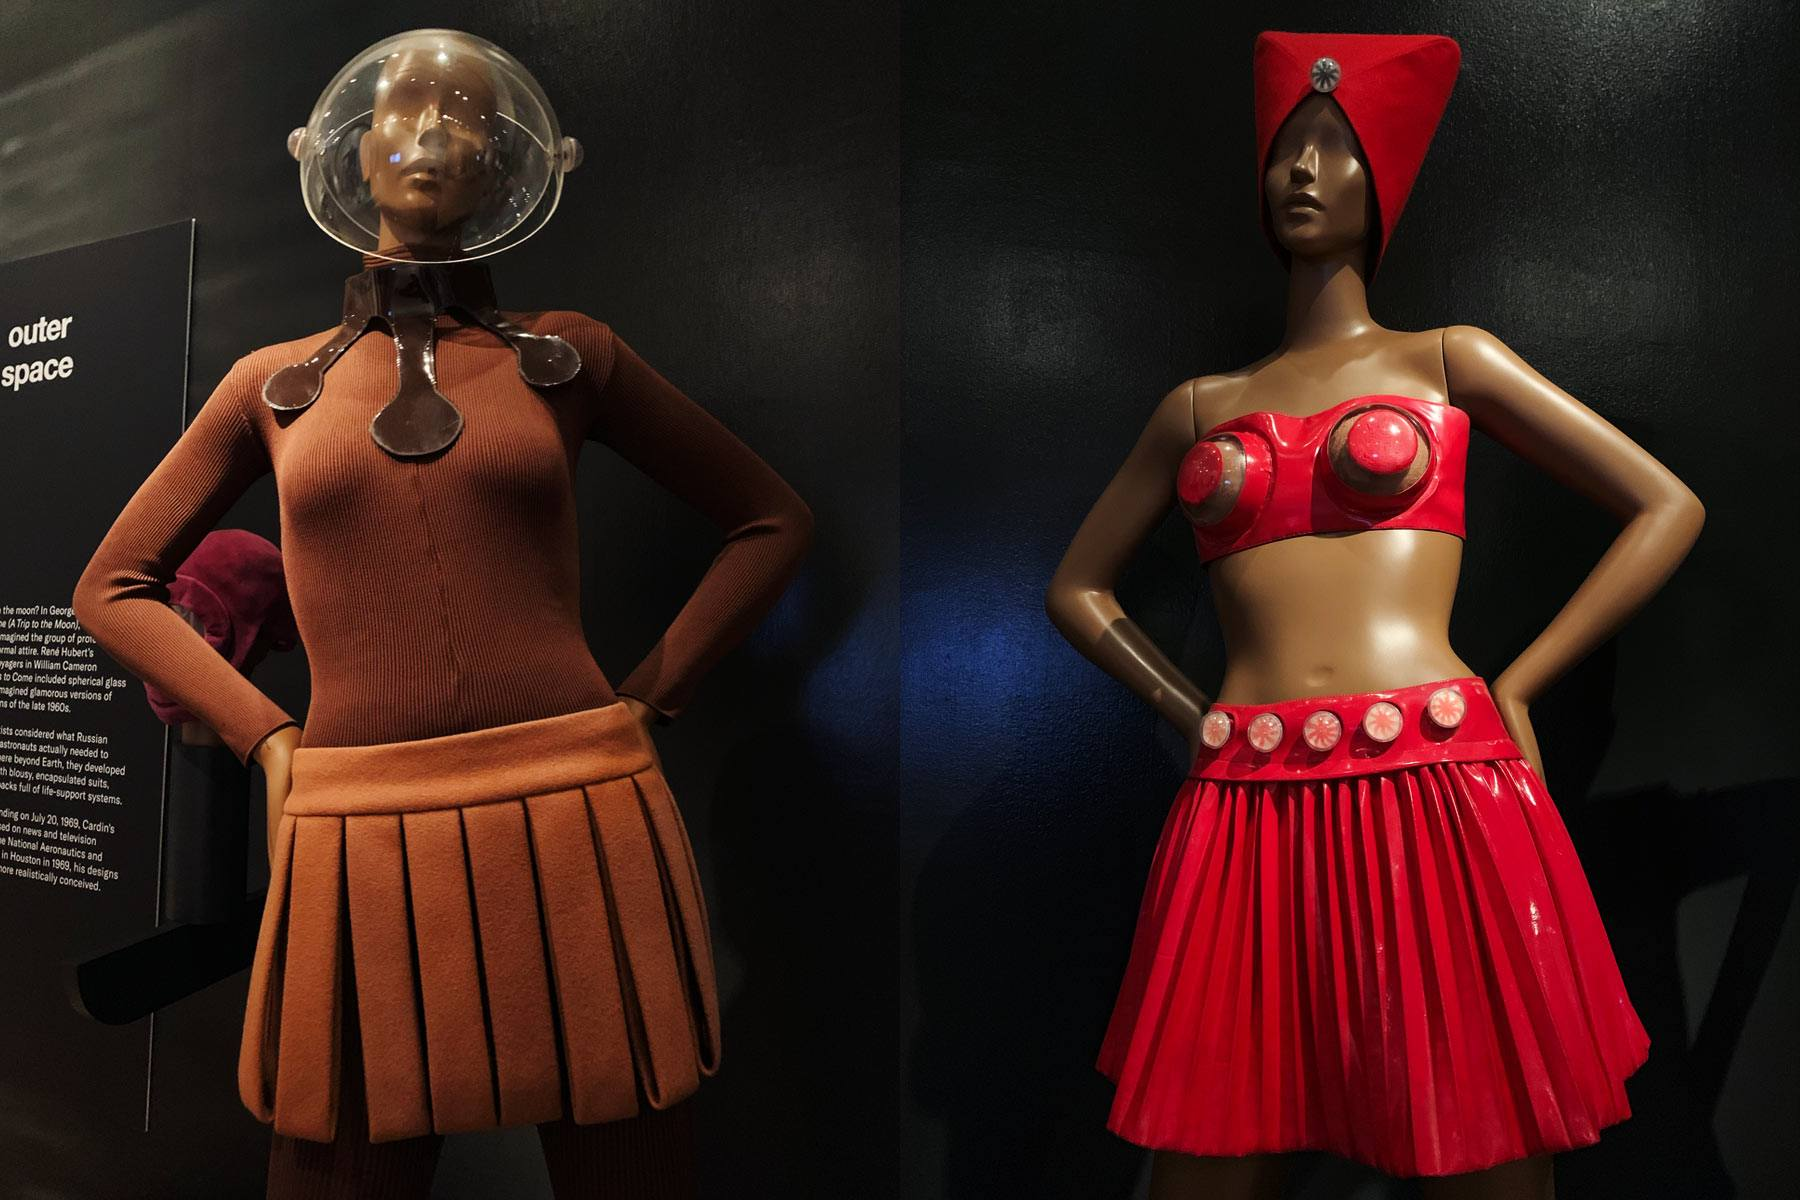 Future Fashion: Pierre Cardin exhibit at the Brooklyn Museum. Photography by Alexander Thompson for Ponyboy magazine.